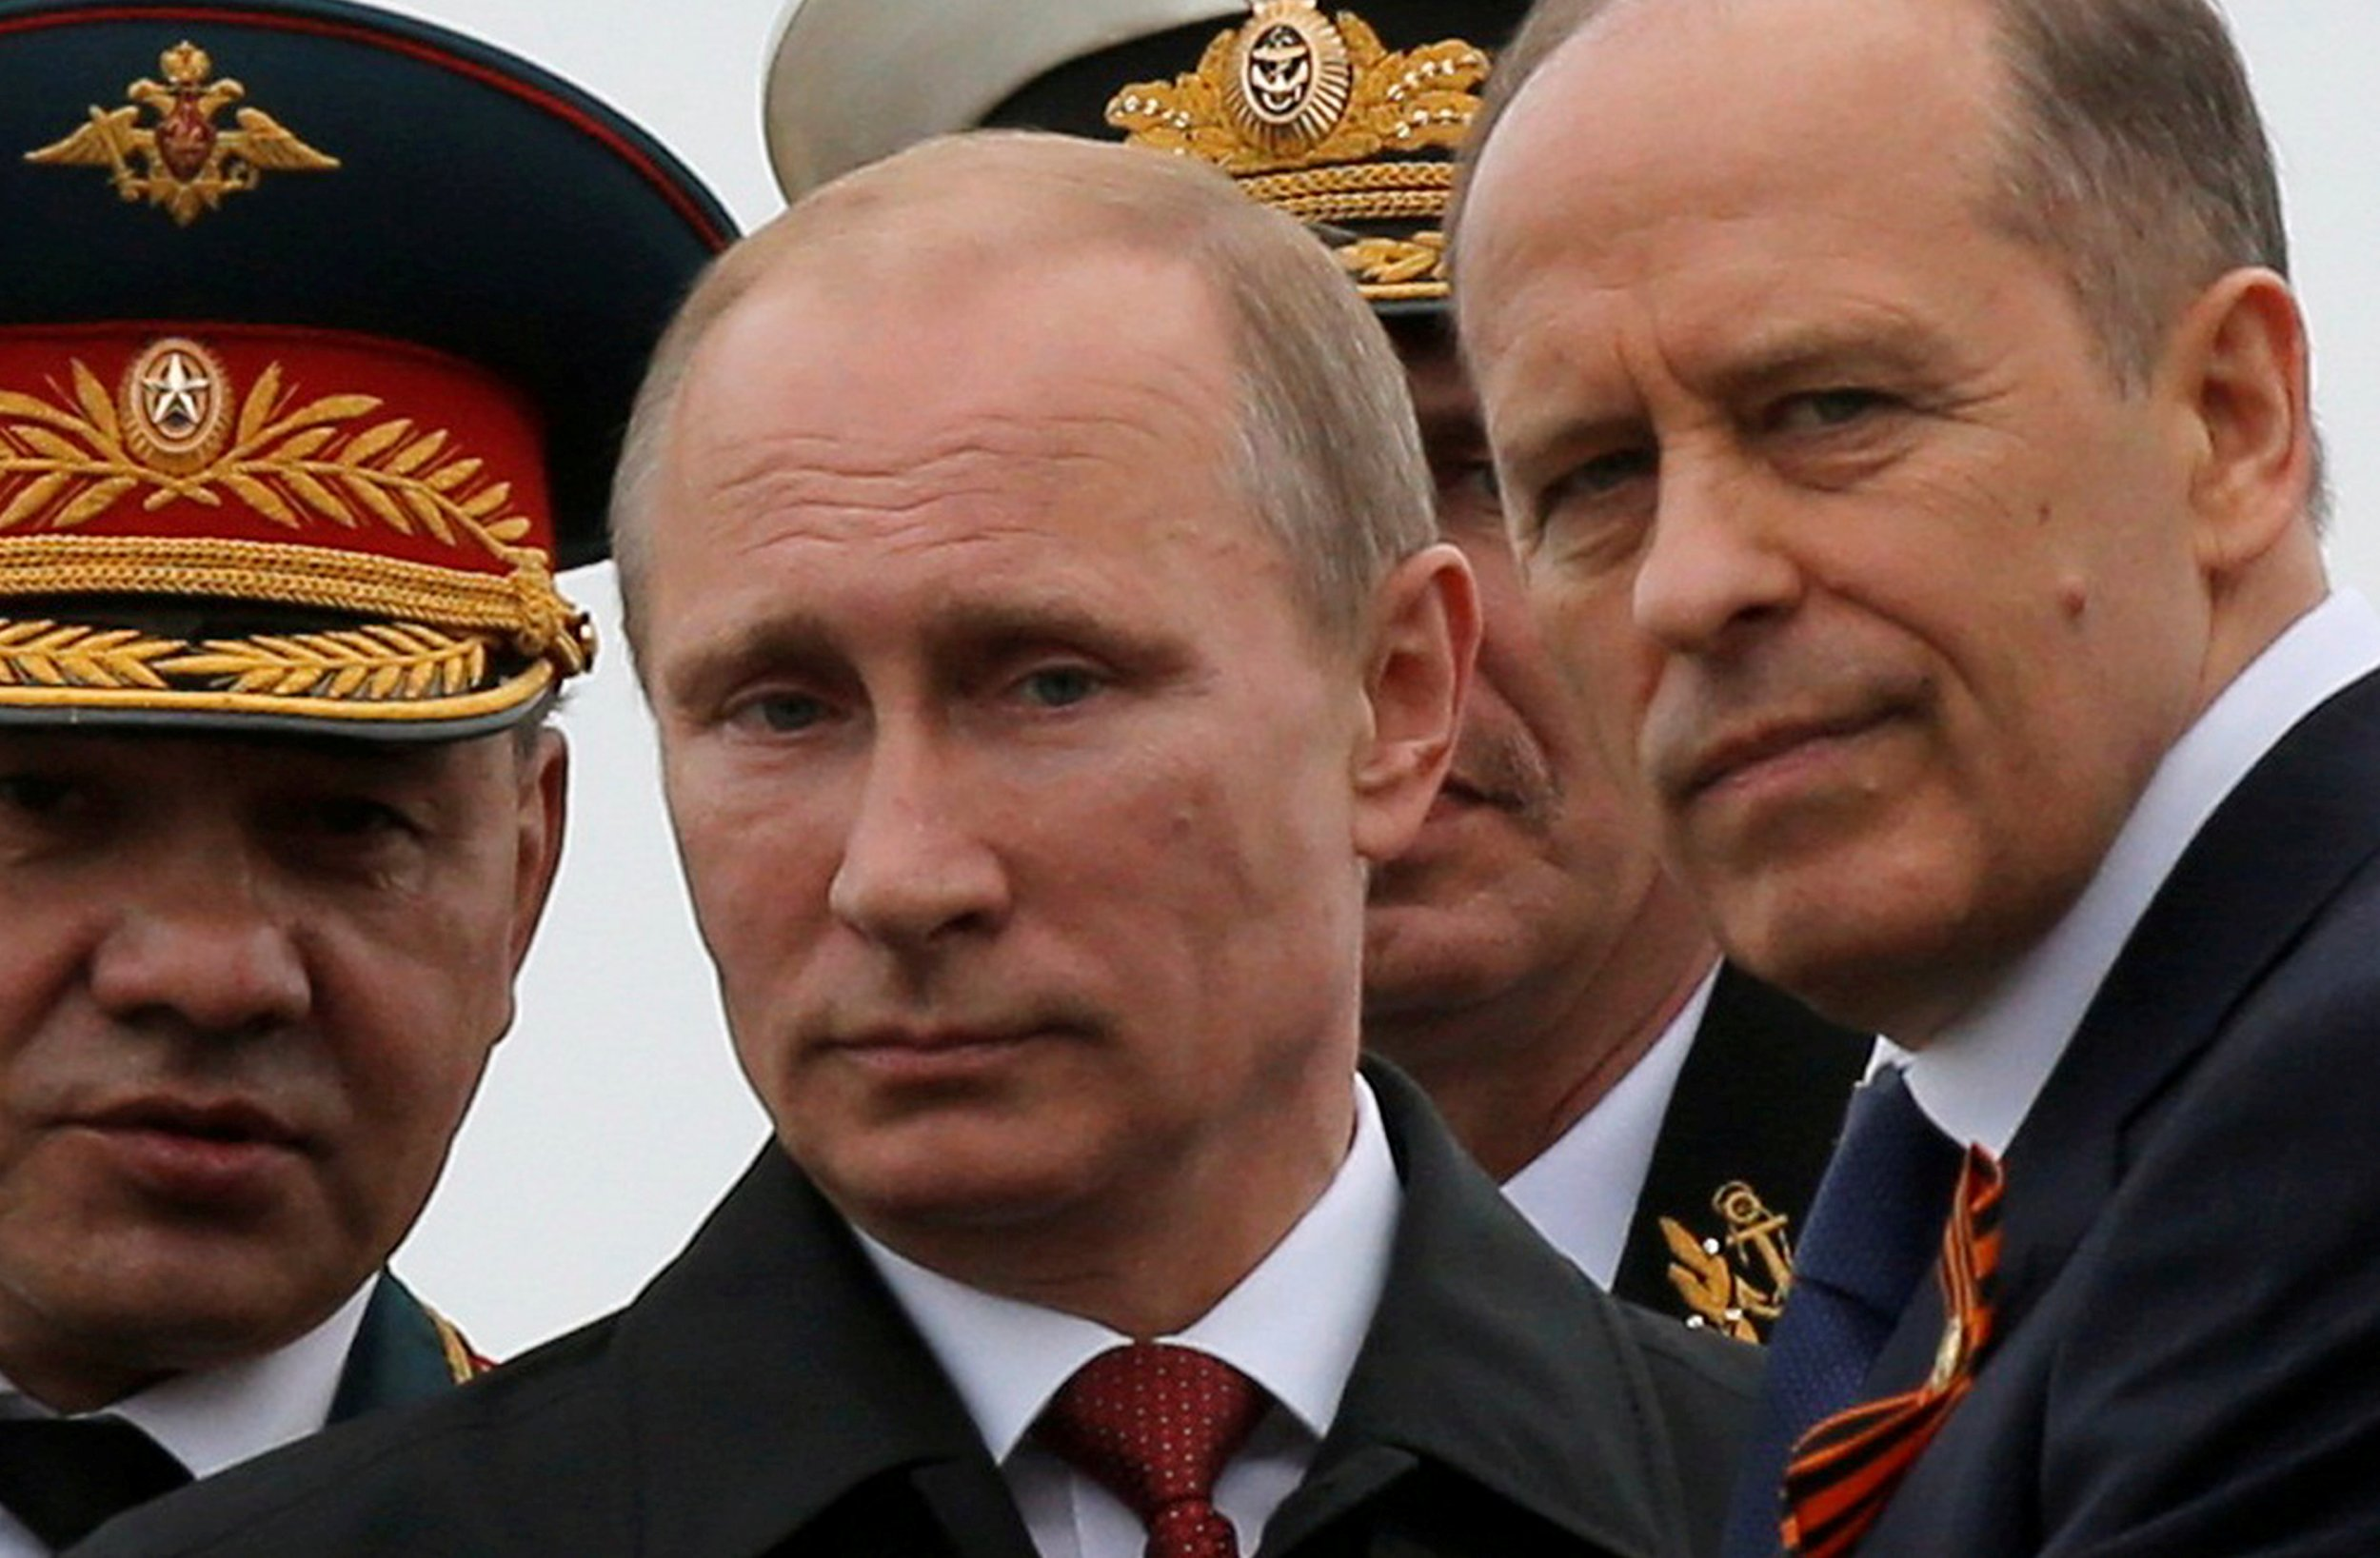 Putin and security chiefs